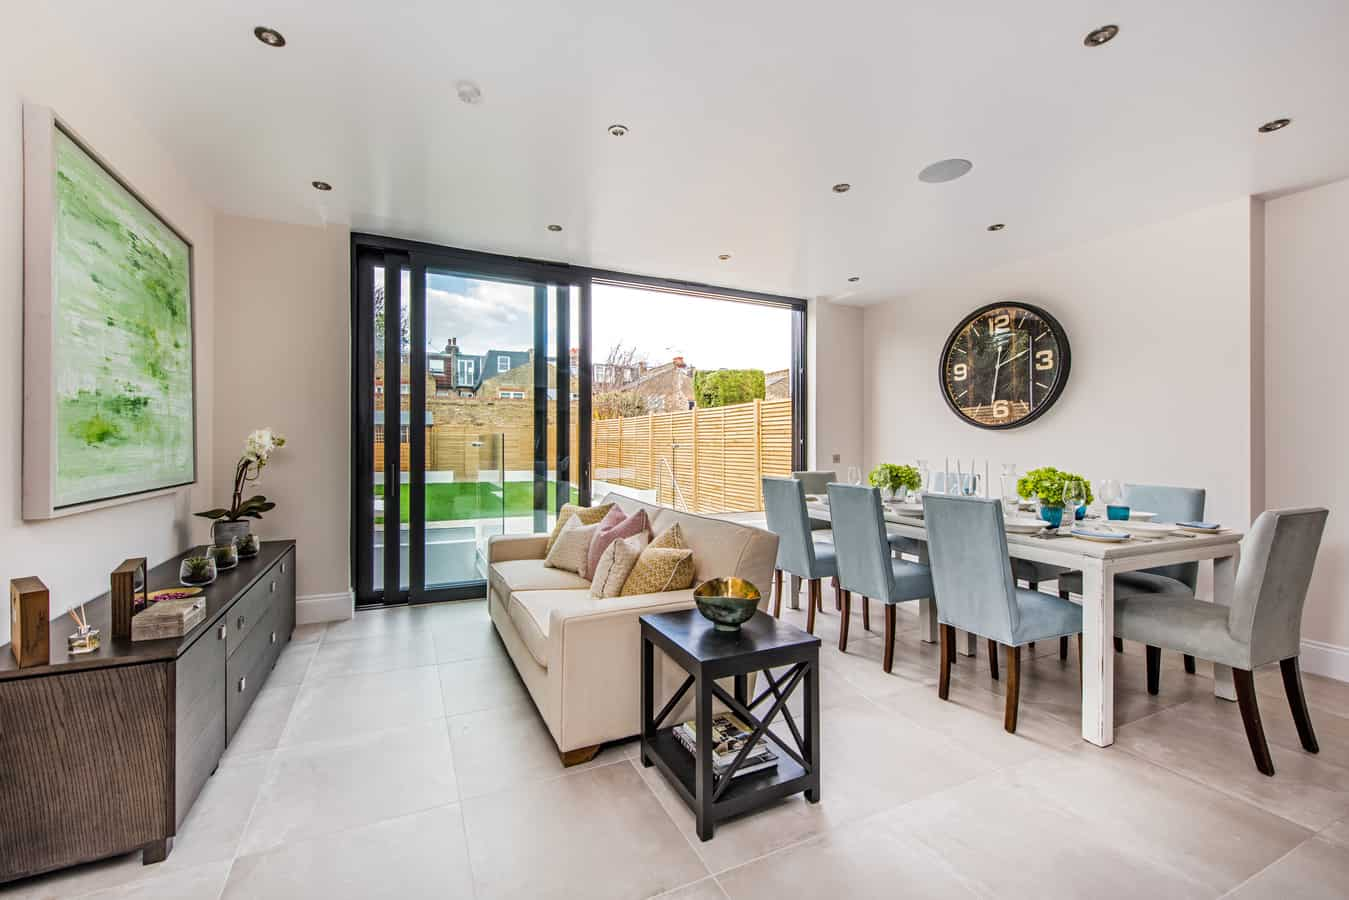 Finlay-Street-home-staged-by-cullum-design-london-uk-56-24